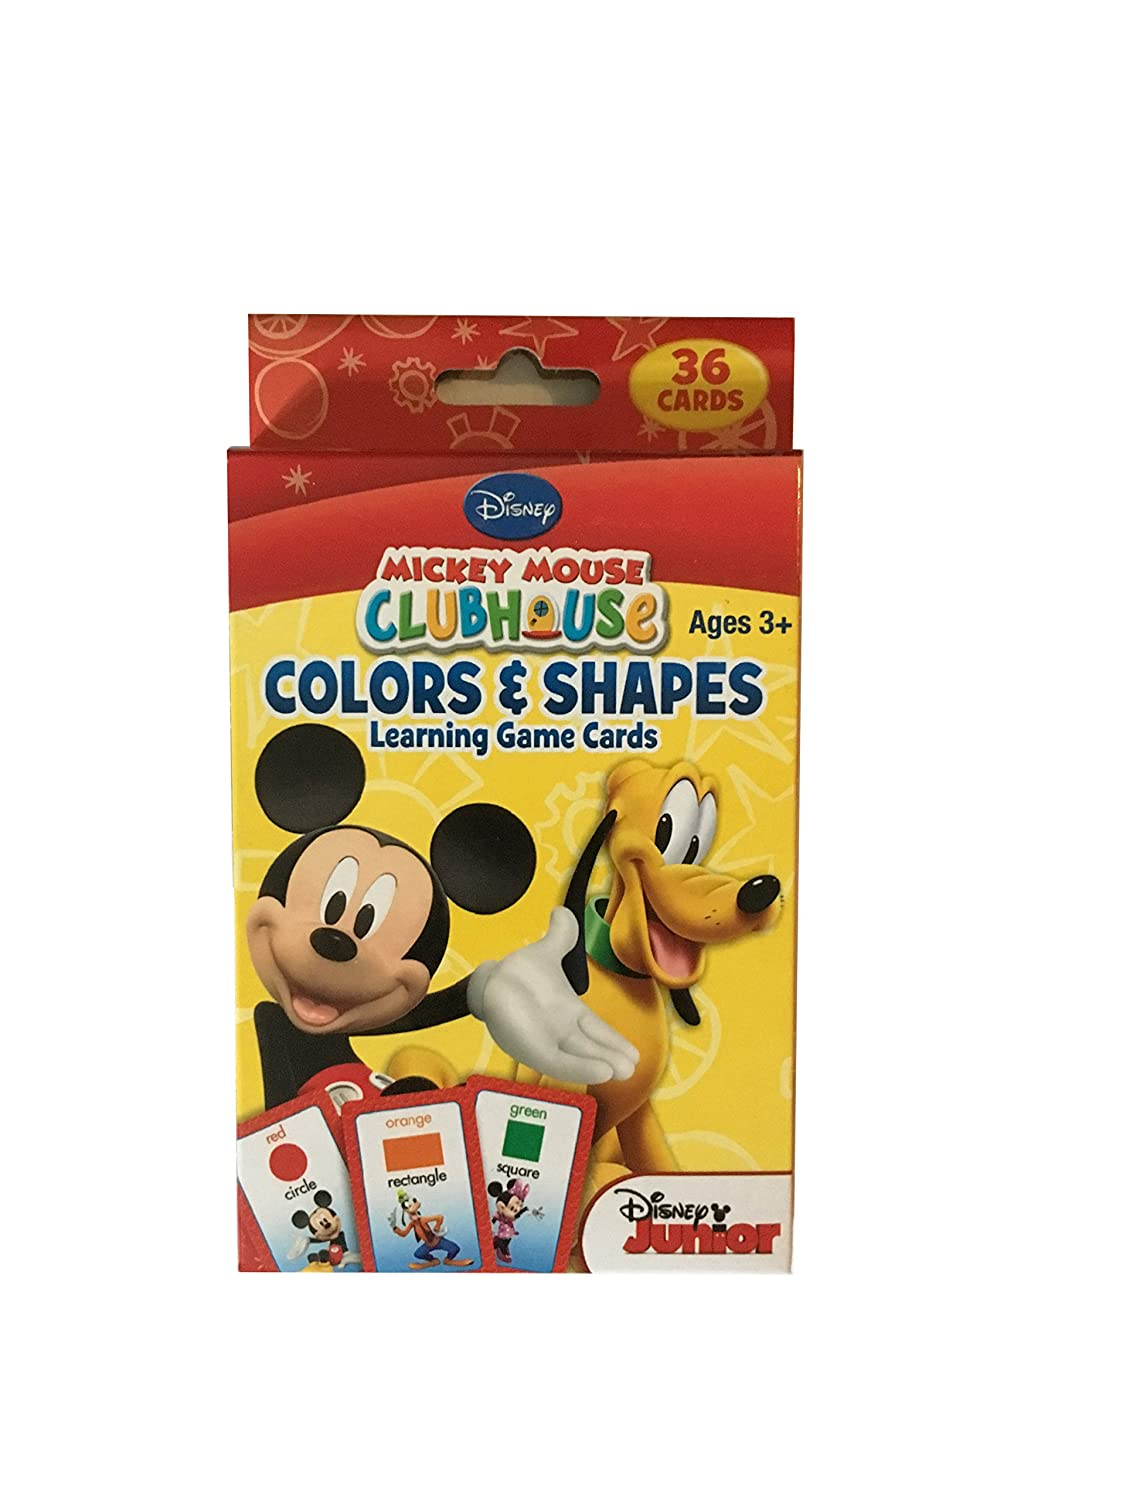 Simple Brilliance Mickey Mouse Clubhouse Flash Cards Learning Game Cards Includes Numbers /& Counting and Colors /& Shapes and Mickey Mouse Clubhouse Stickers